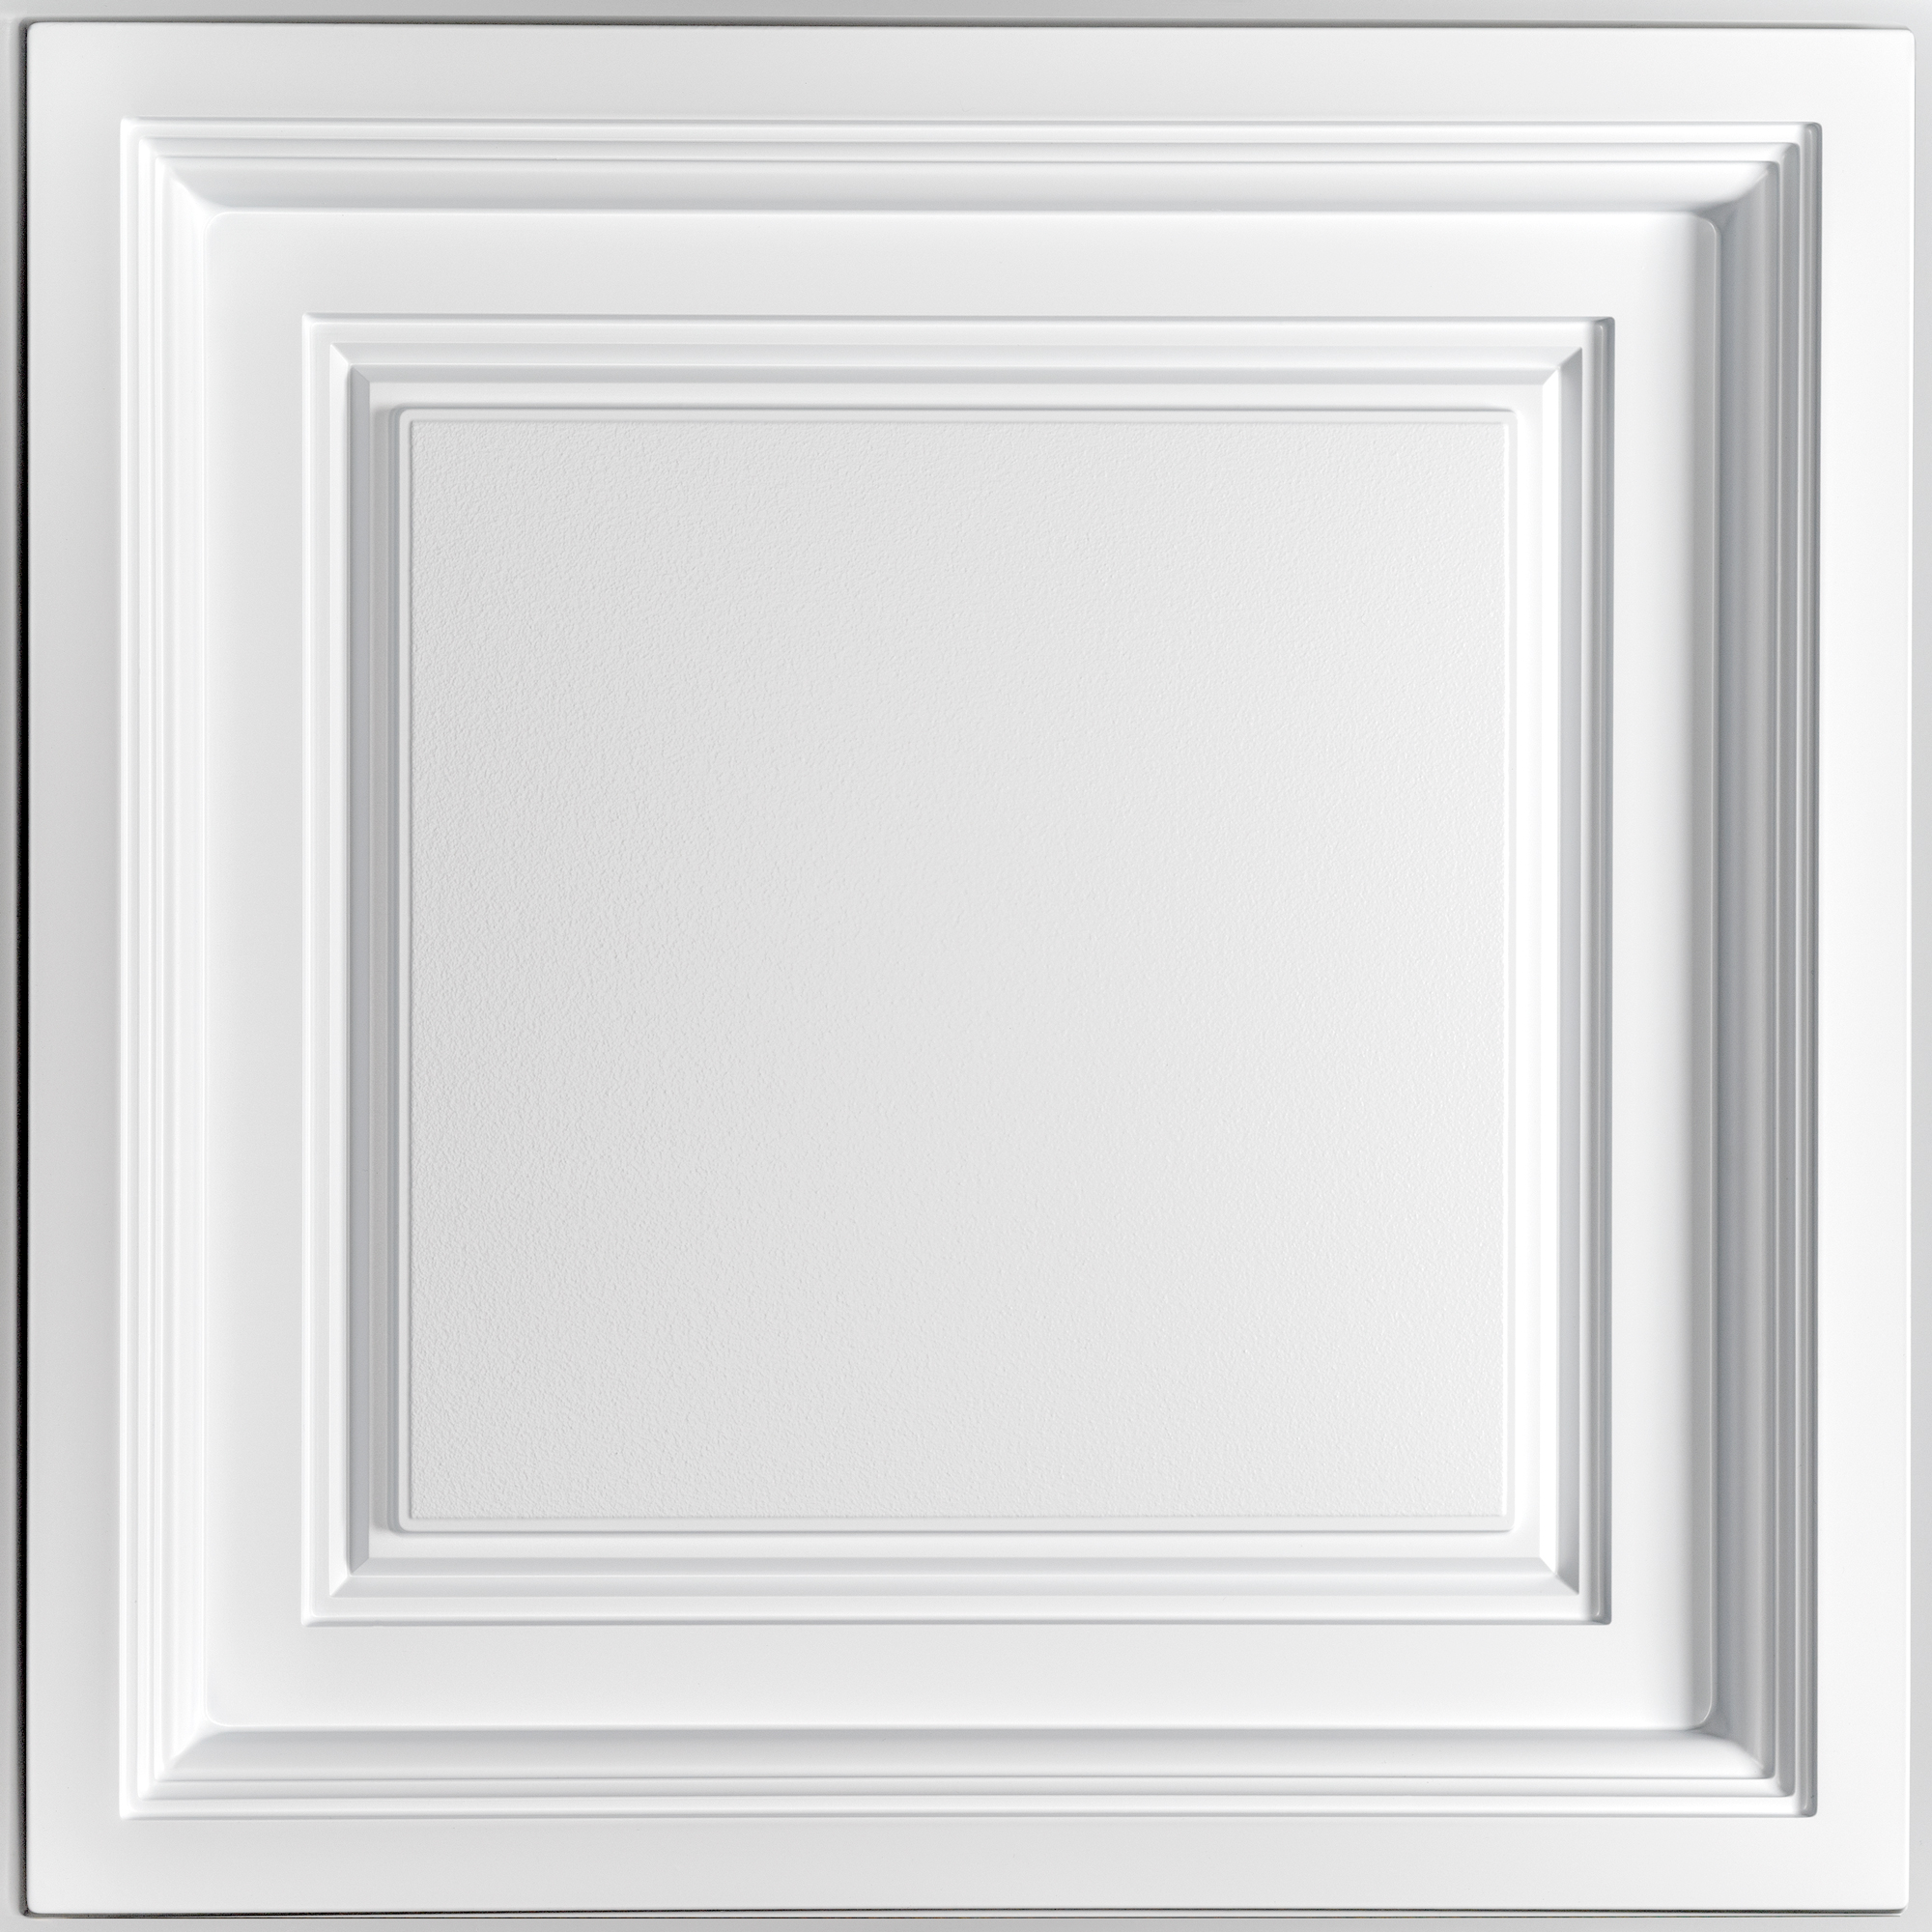 Westminster Ceiling Tiles - Best place to buy ceiling tiles